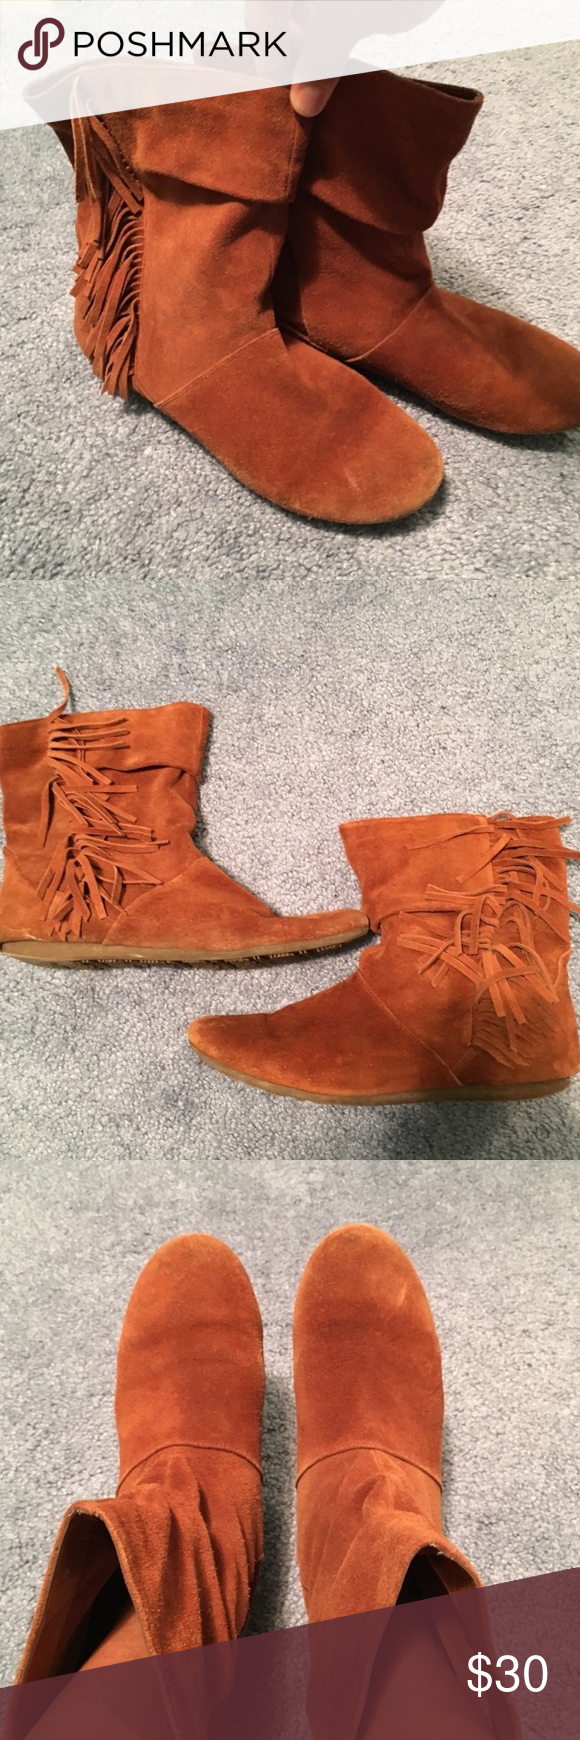 Aldo brown moccasin booties with fringes Cute moccasin booties with a Native American vibe! Has normal signs of wear. I used to love these just don't wear them anymore. Aldo Shoes Ankle Boots & Booties